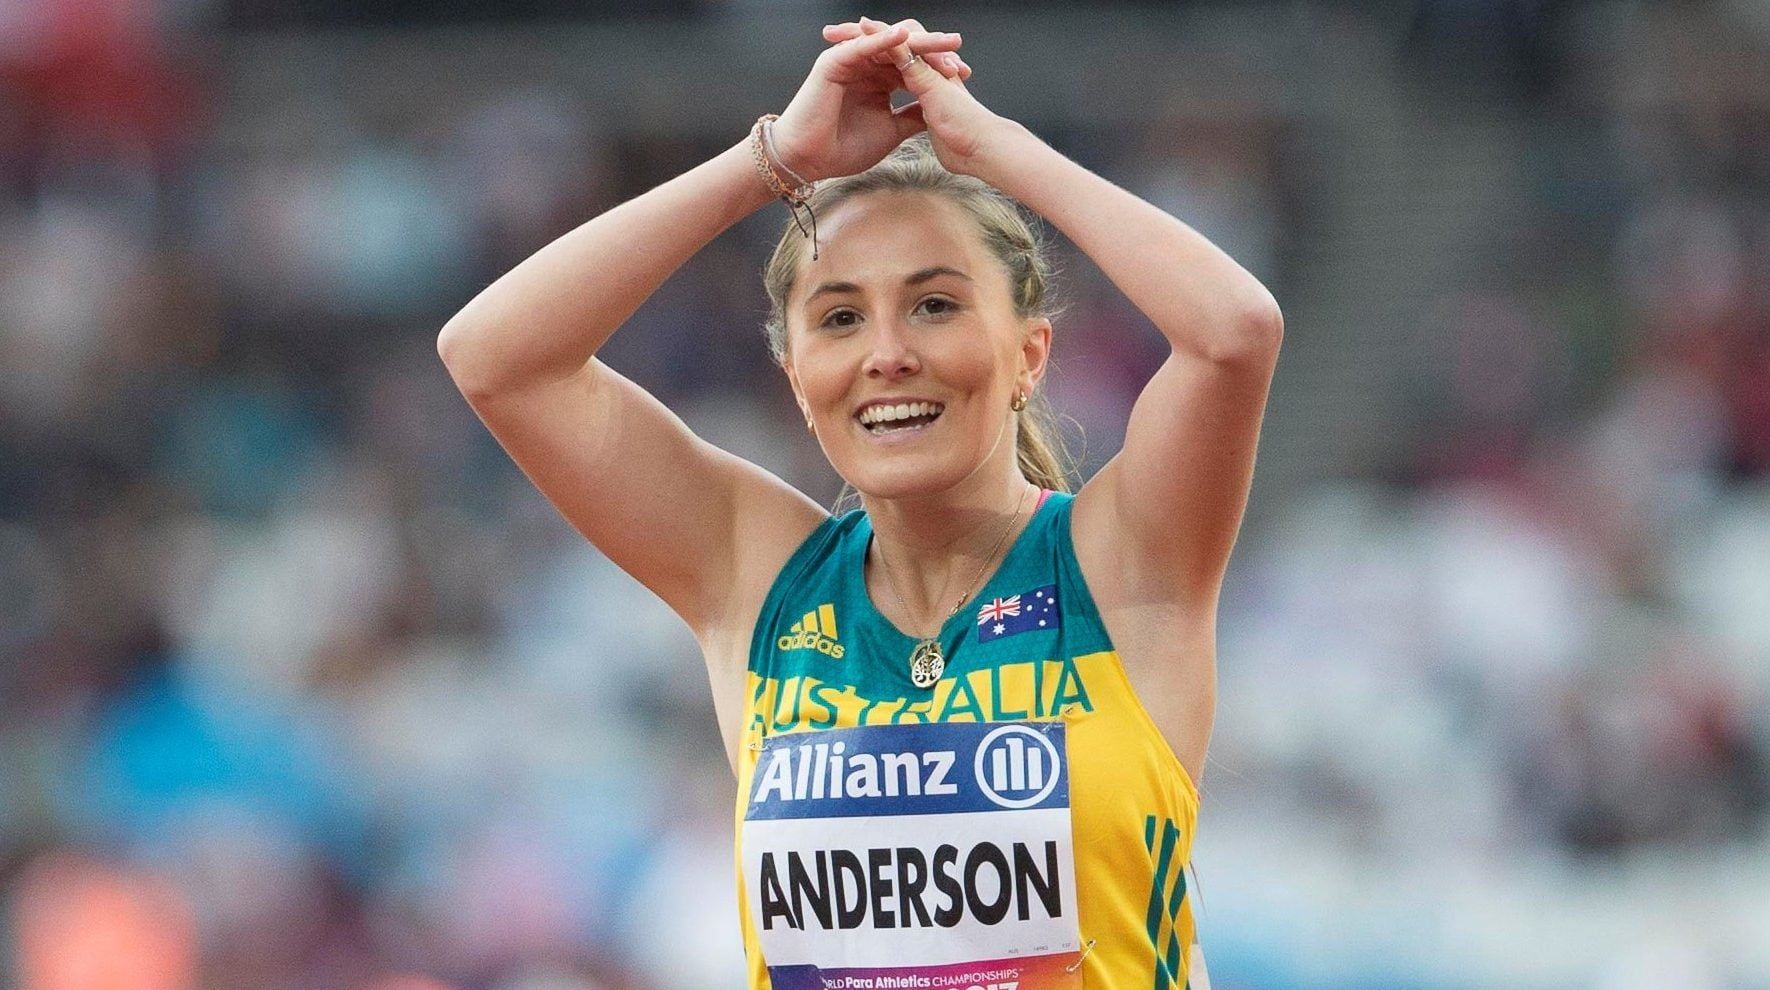 Medal success out of reach for McCracken and Anderson